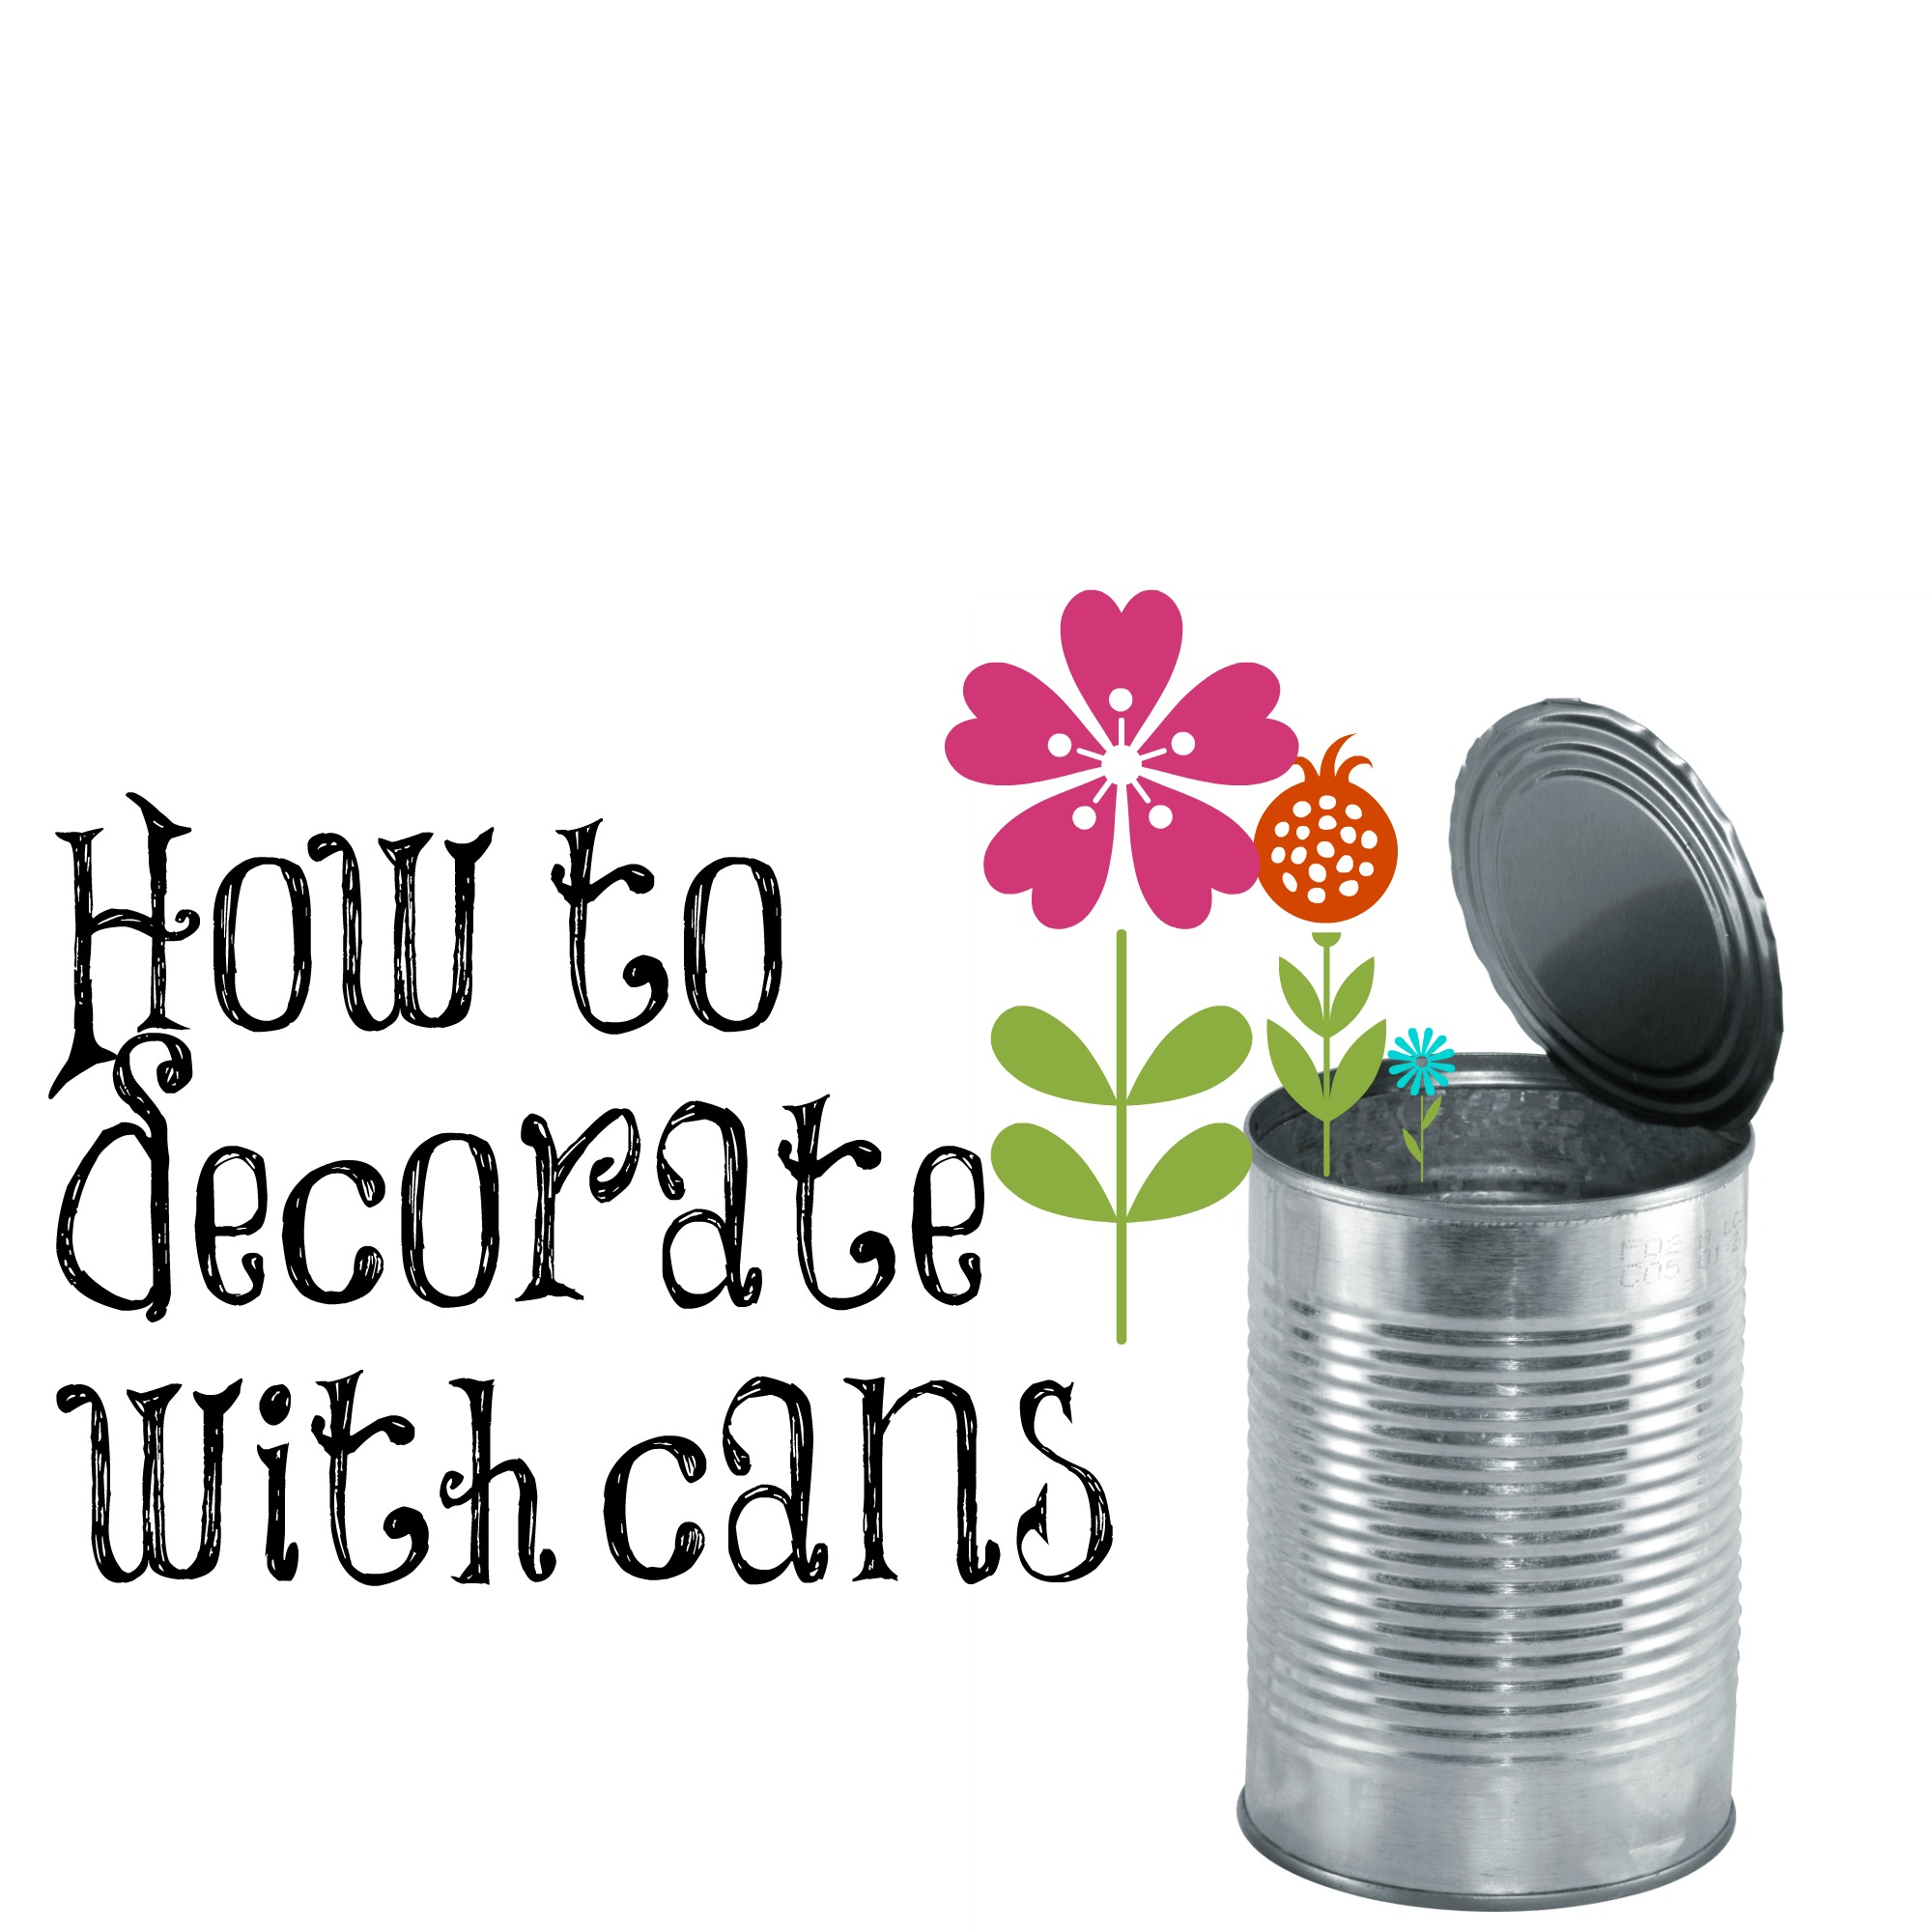 Painting cans and how to decorate with them - Debbiedoo's